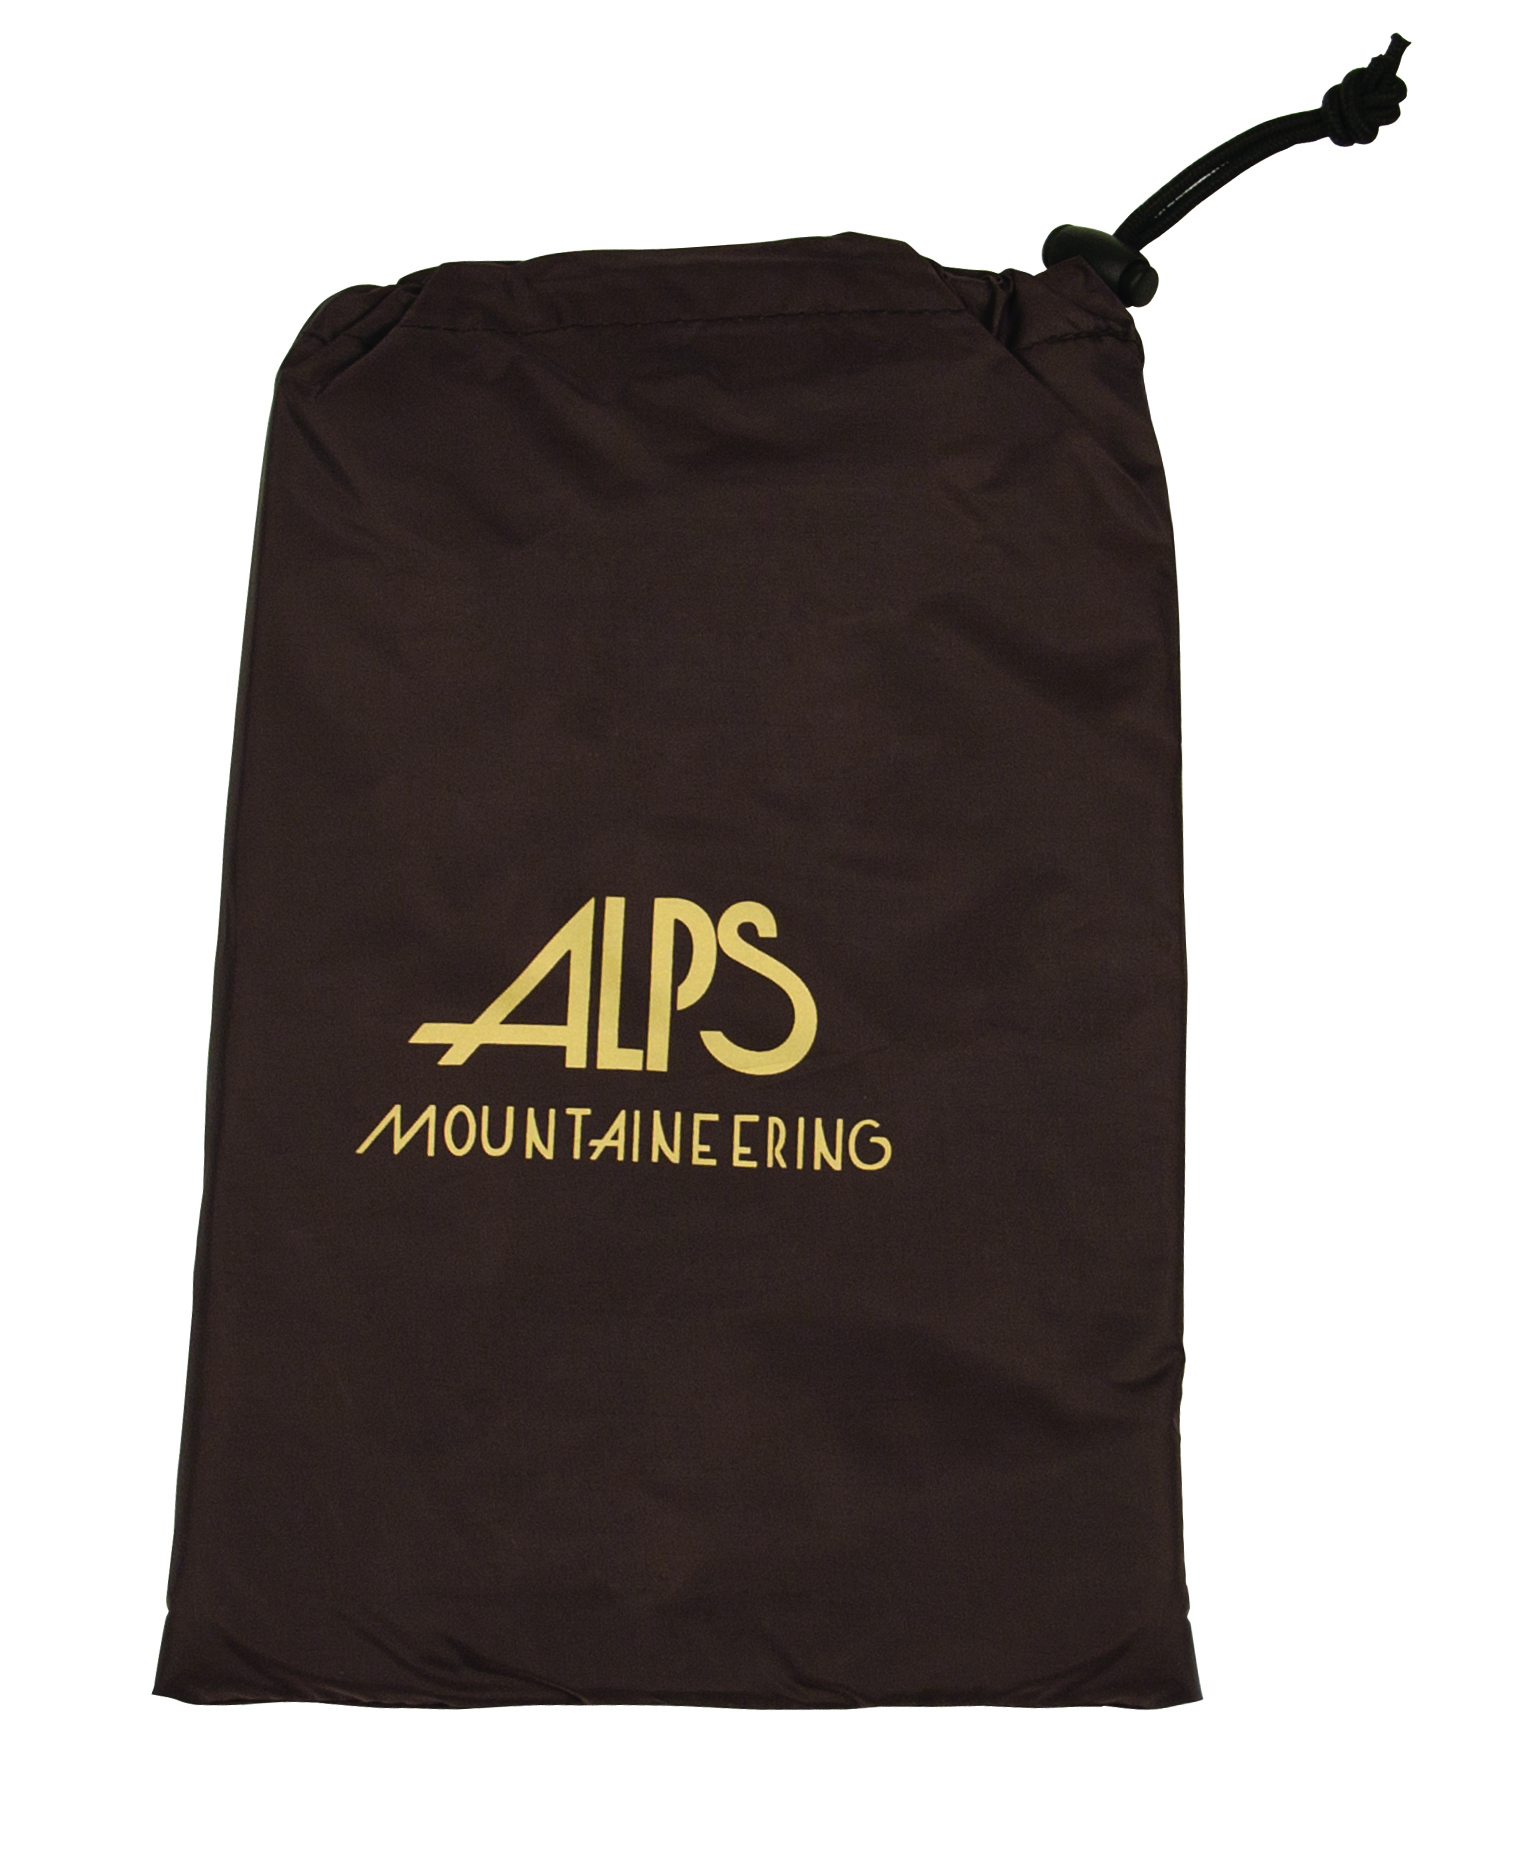 ALPS Mountaineering Mystique 1.5 Floor Saver